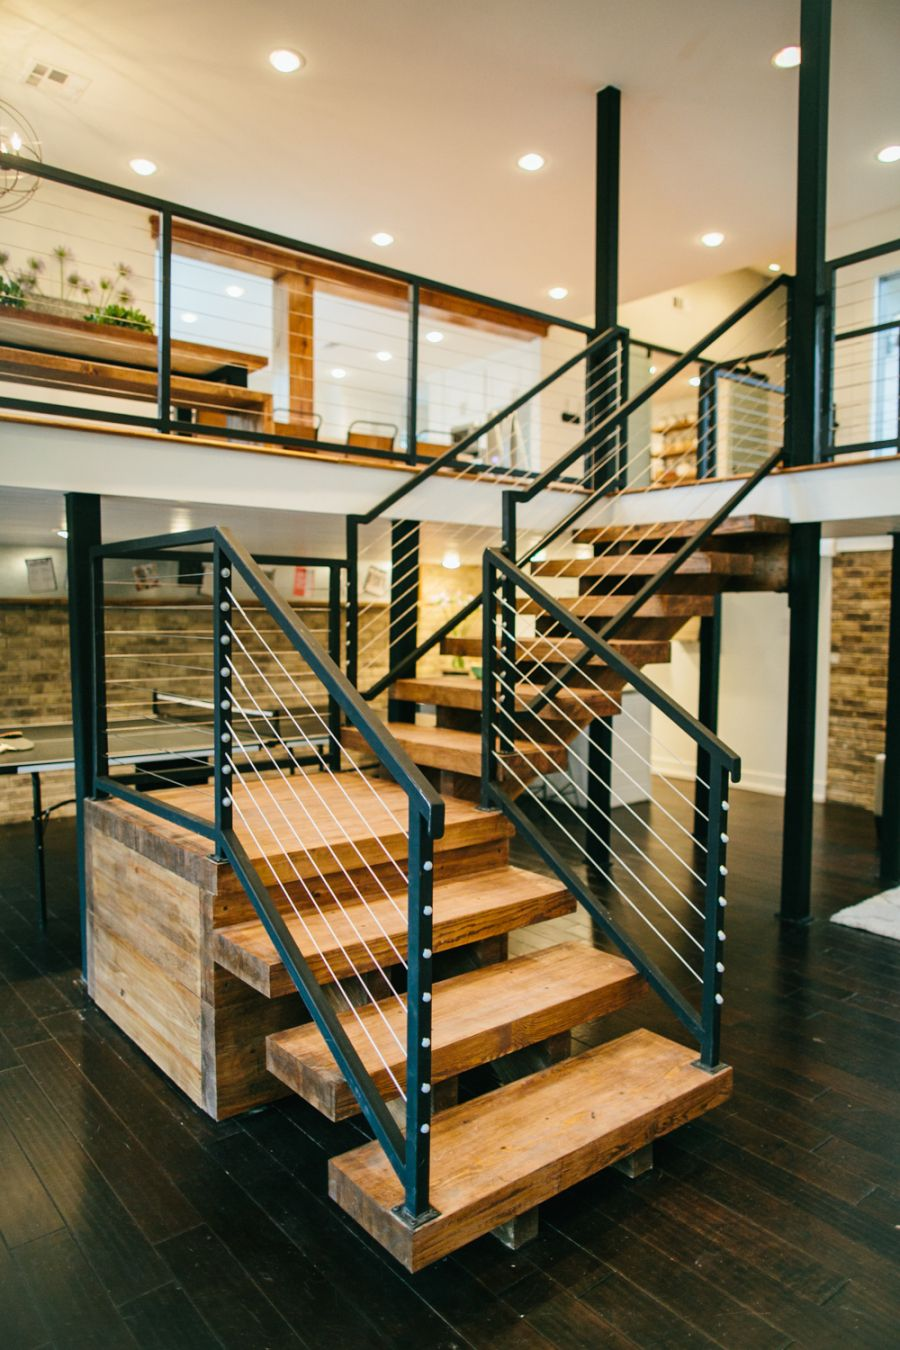 75 Most Popular Staircase Design Ideas For 2019: Our Favorite HGTV Fixer Upper Interior Design Moments! In